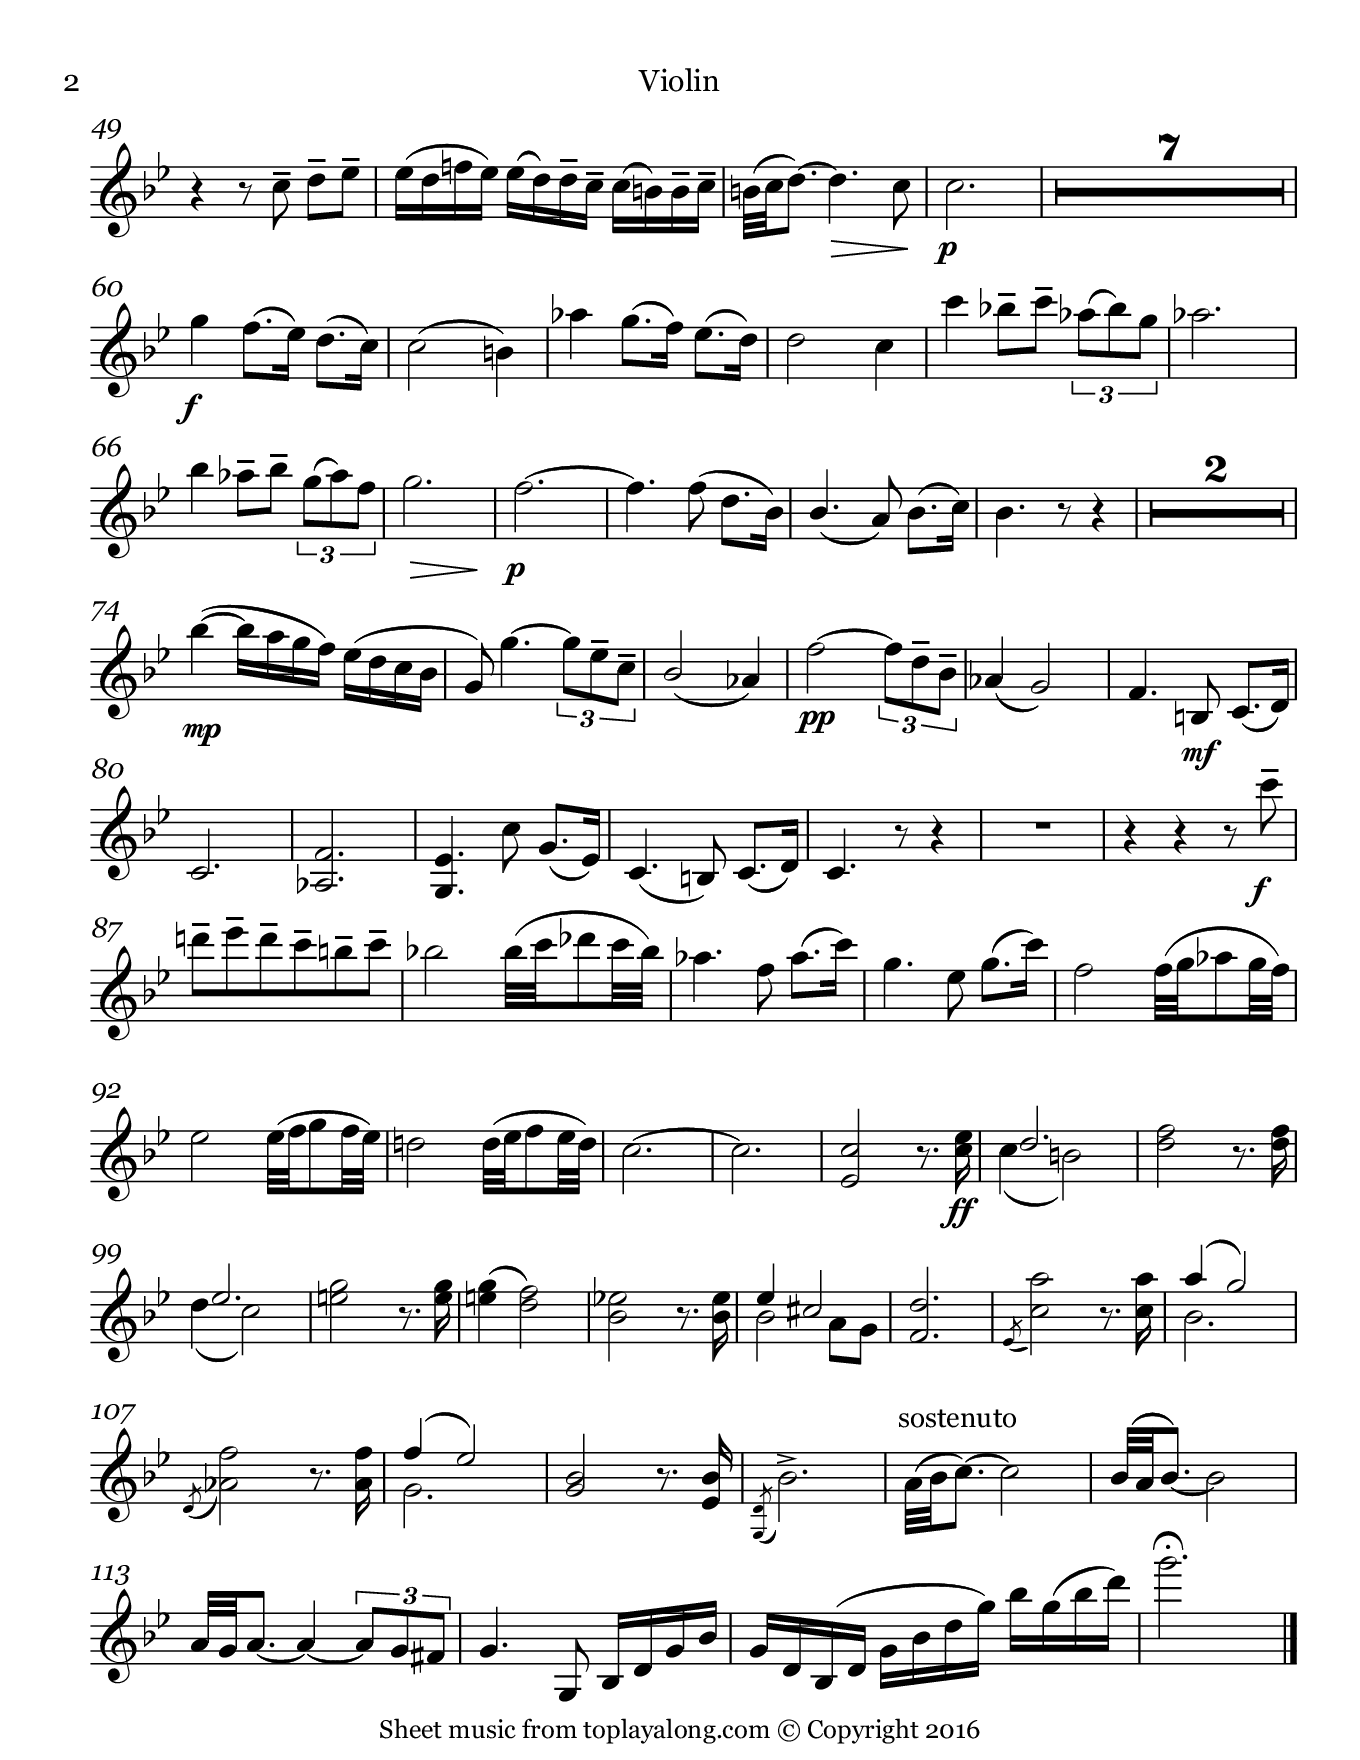 Adagio in G minor by Albinoni. Sheet music for Violin, page 2.